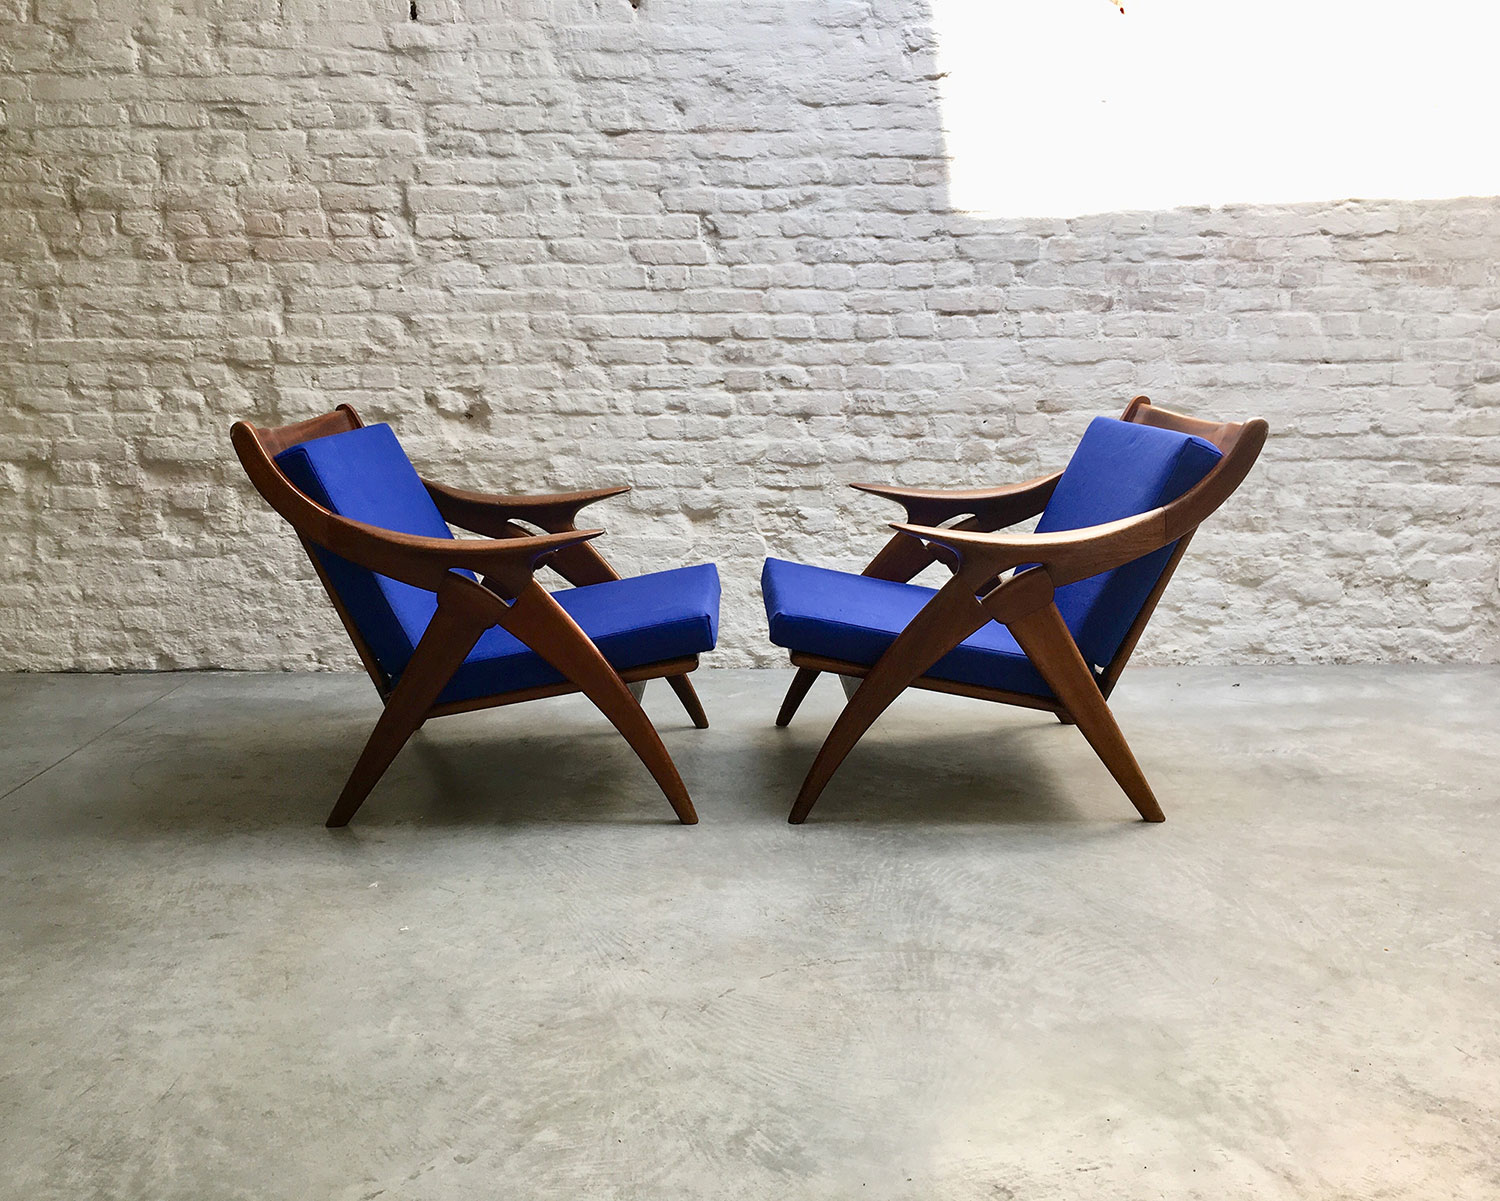 Die-Firma-vintage-shop-Antwerp-de-knoop-destergelderland-chairs